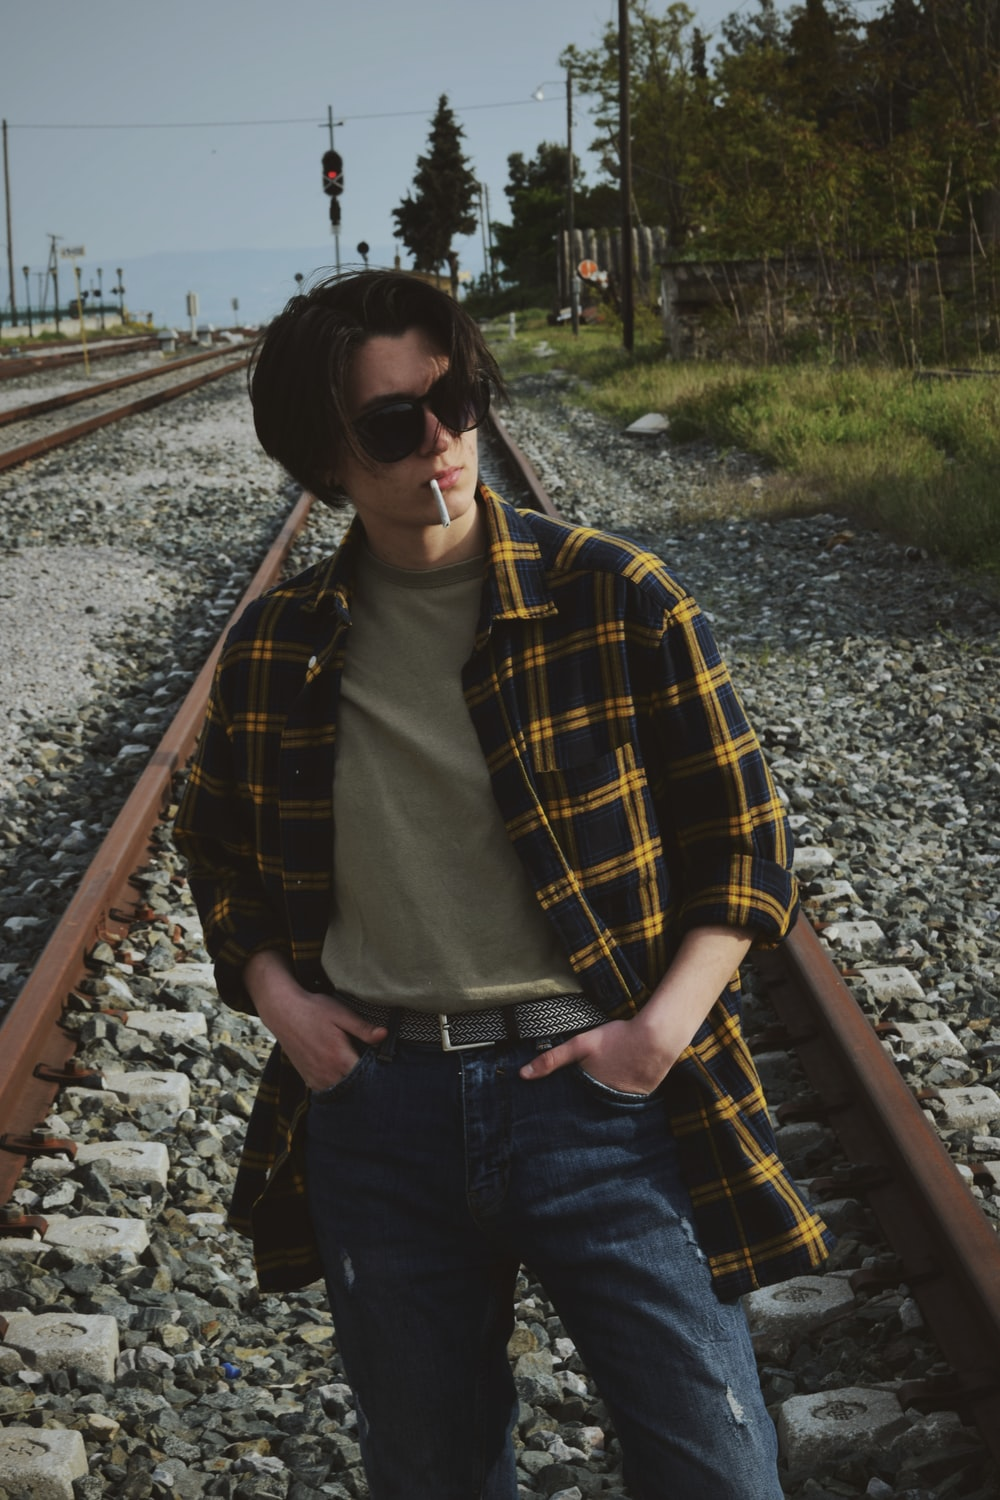 man with cigarette in black and brown checked blazer and blue denim jeans standing in train tracks